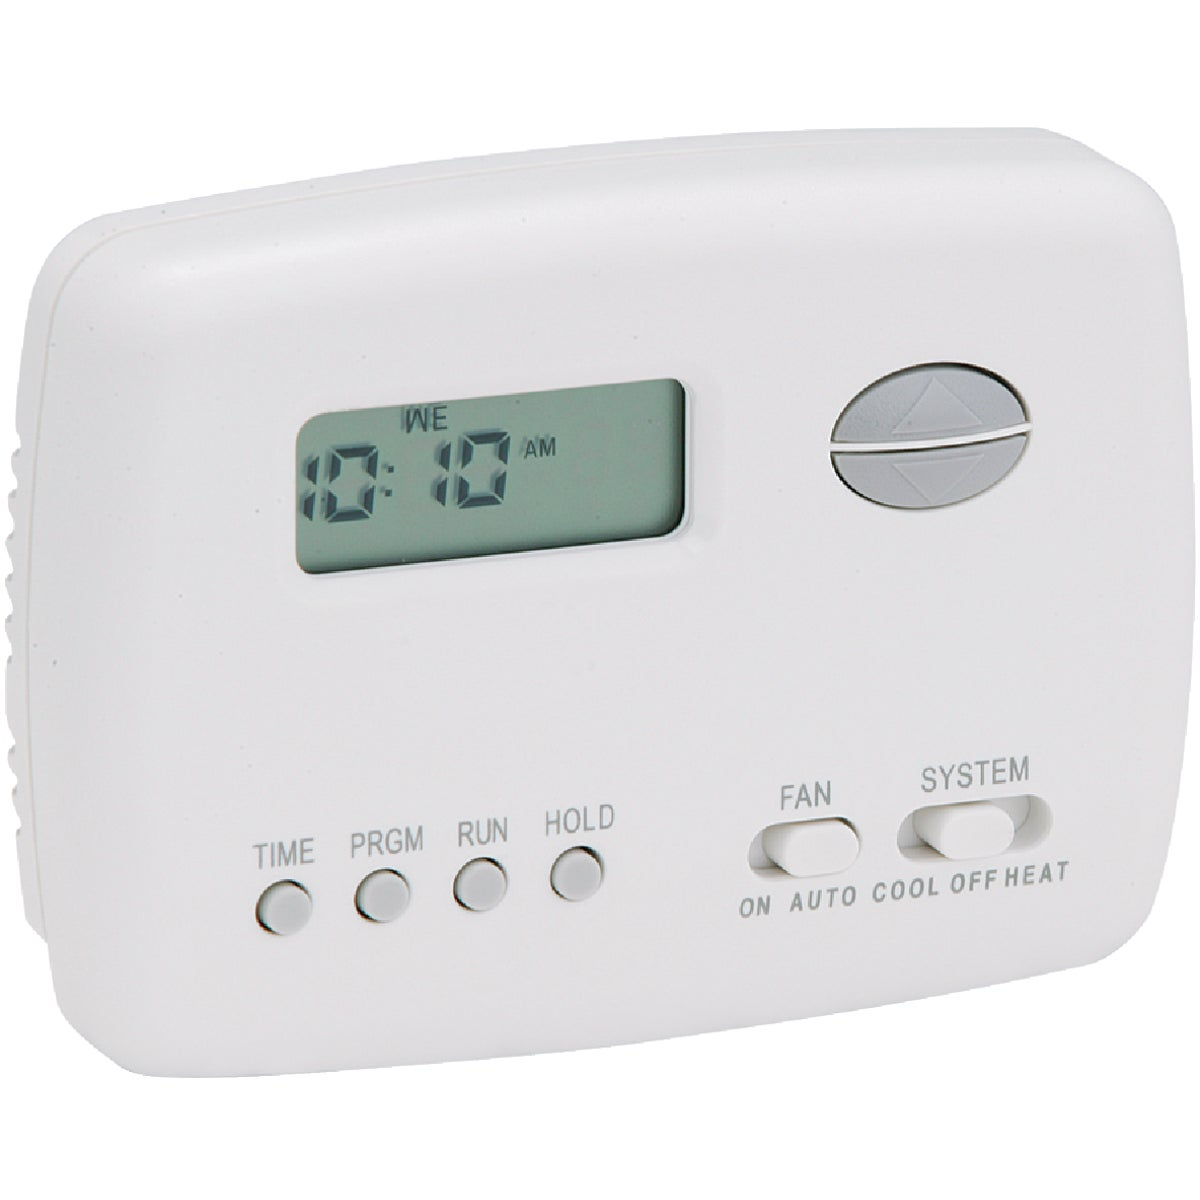 DIGITAL THERMOSTAT - 474045 by White Rodgers Emersn